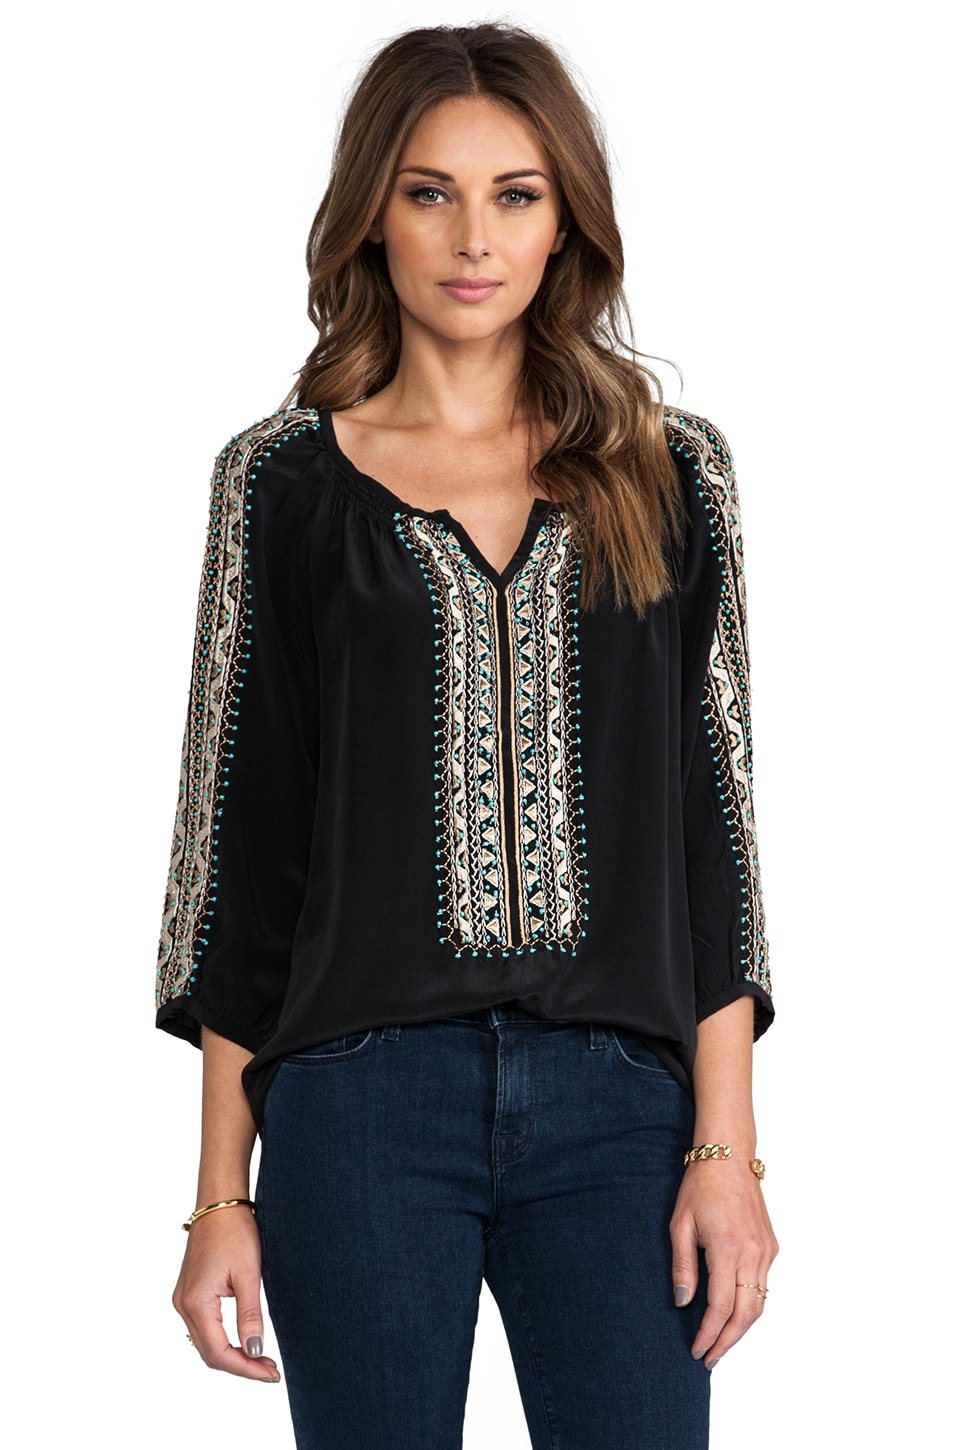 Nanette Lepore Tipis Top in Black